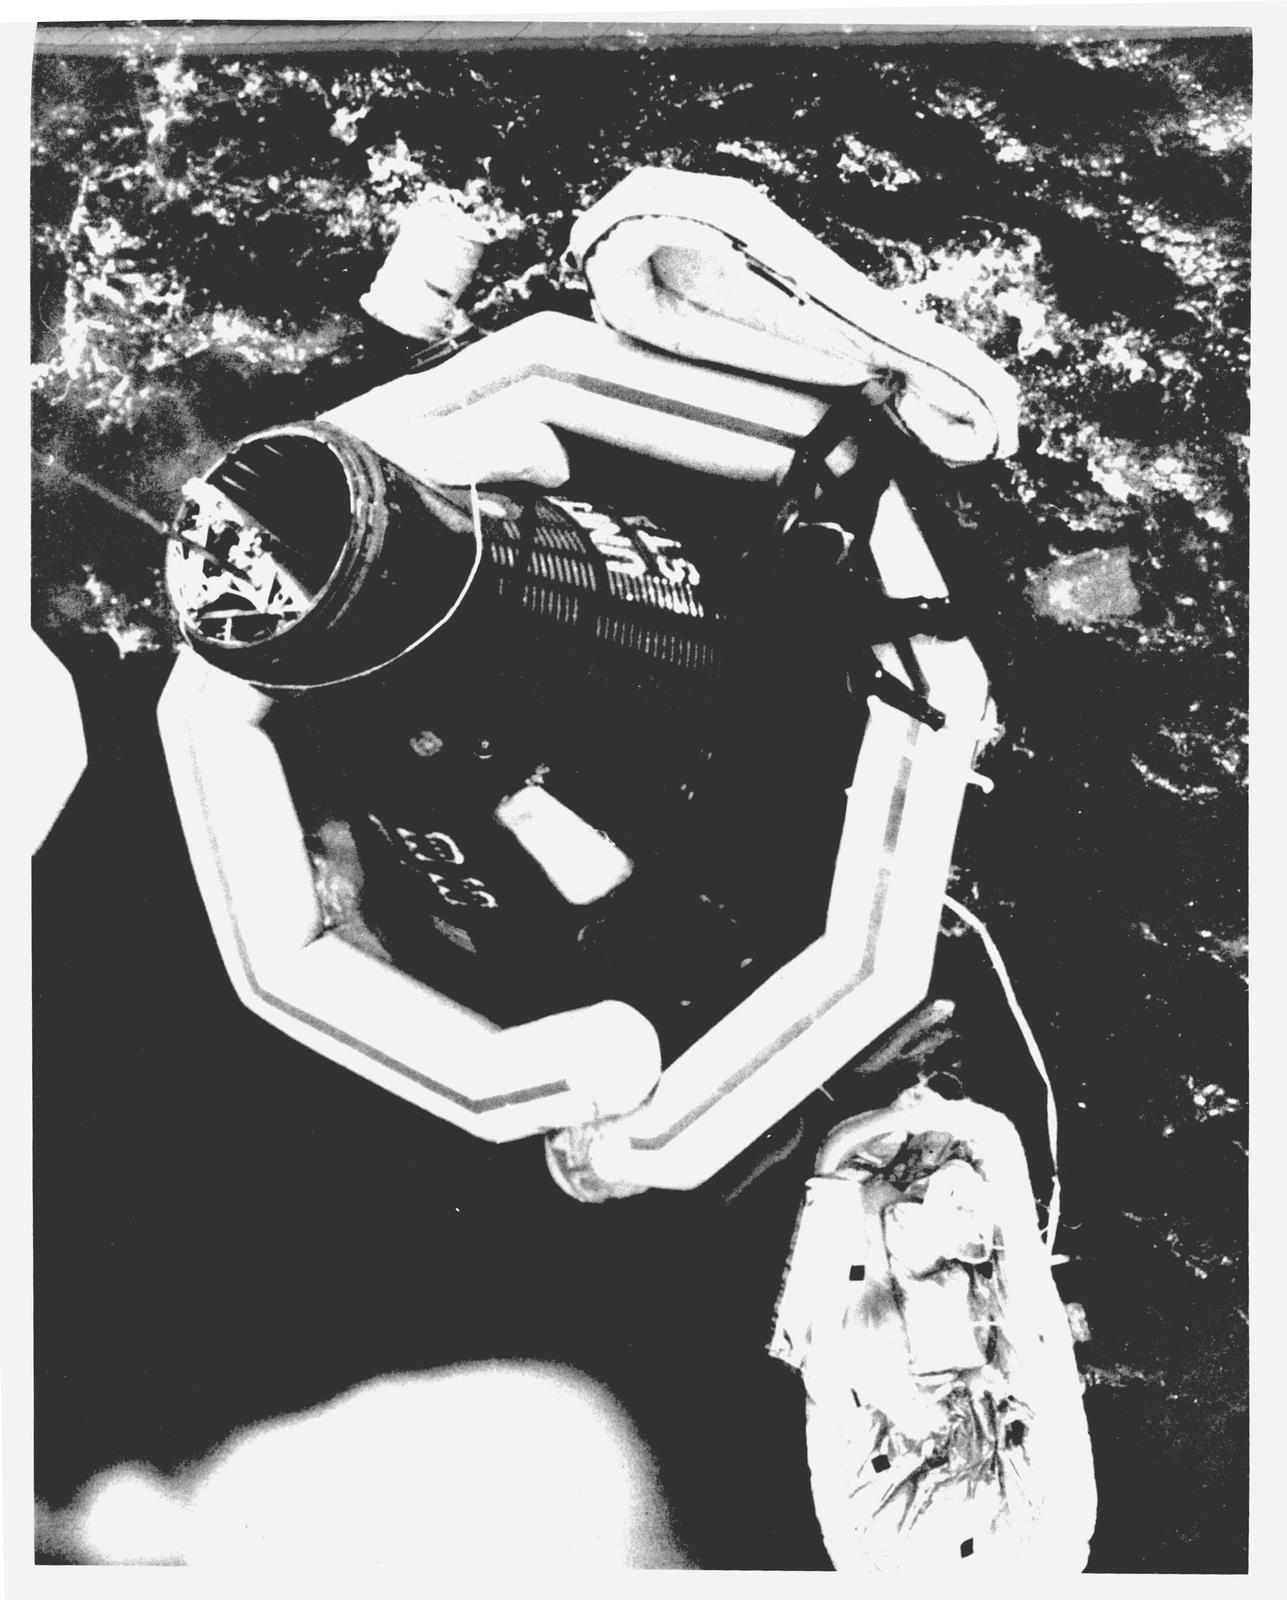 Photograph of Mercury Spacecraft Aurora 7 Floating in the Atlantic during Recovery Operations